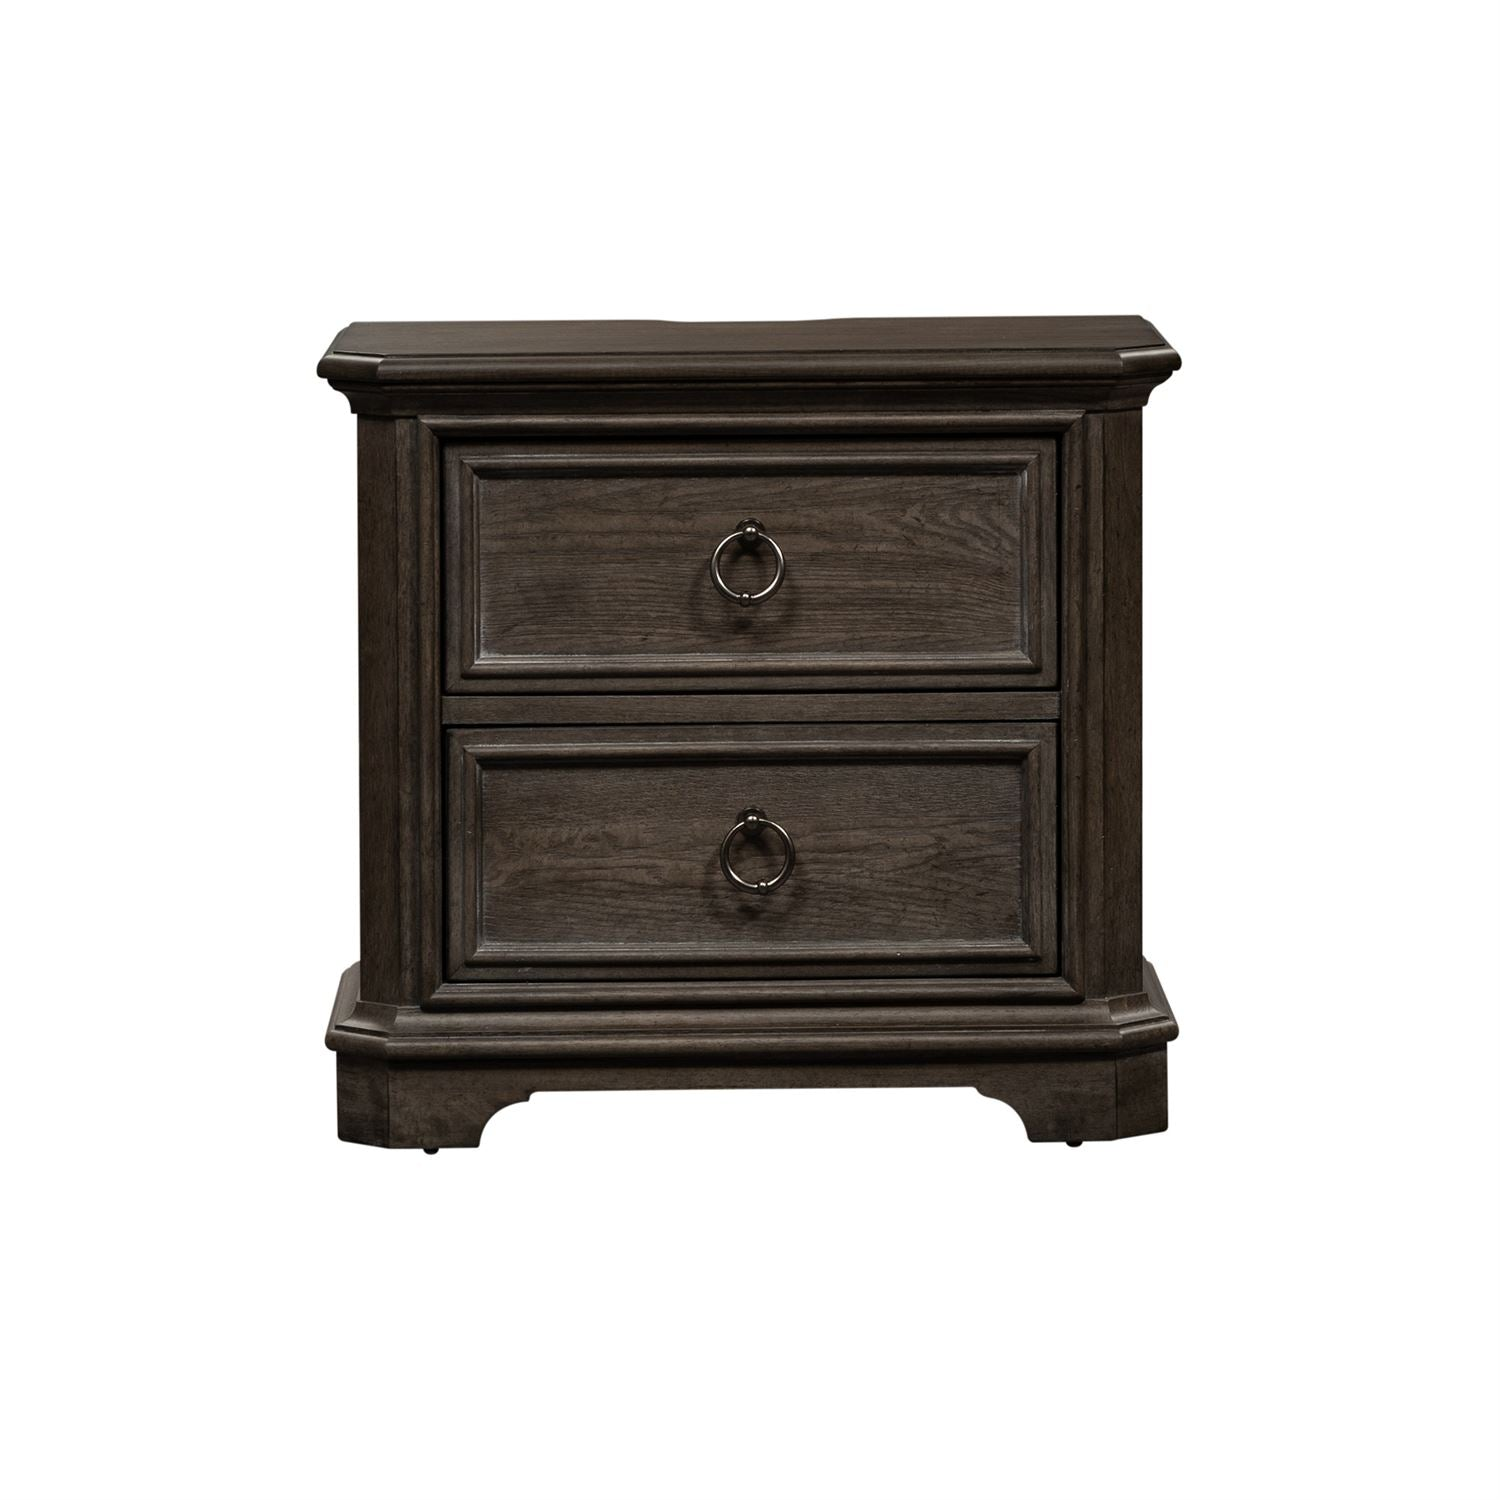 Townsend Place 2 Drawer Night Stand